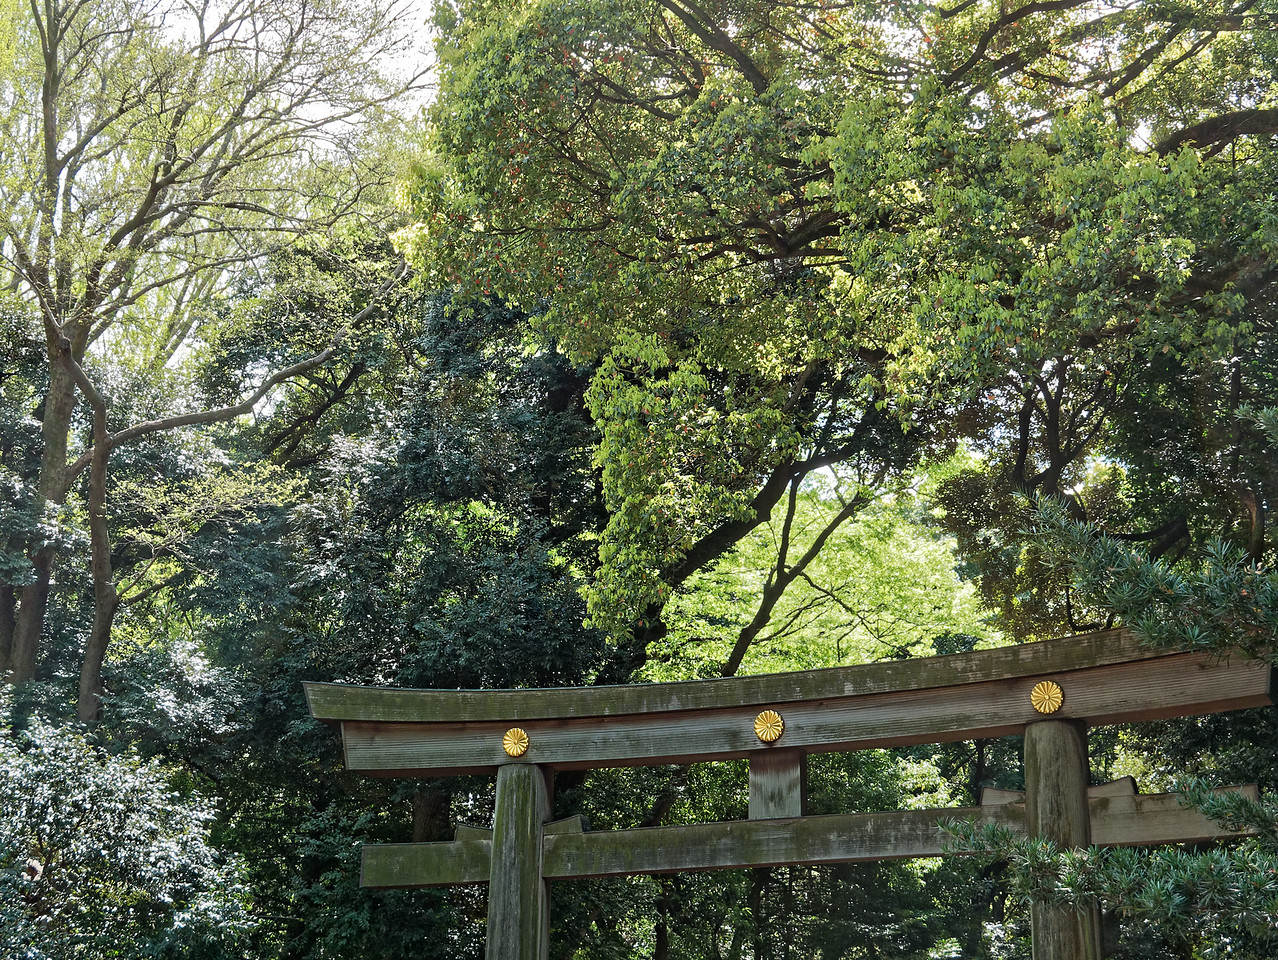 Torii marking an outer entrance to the shrine